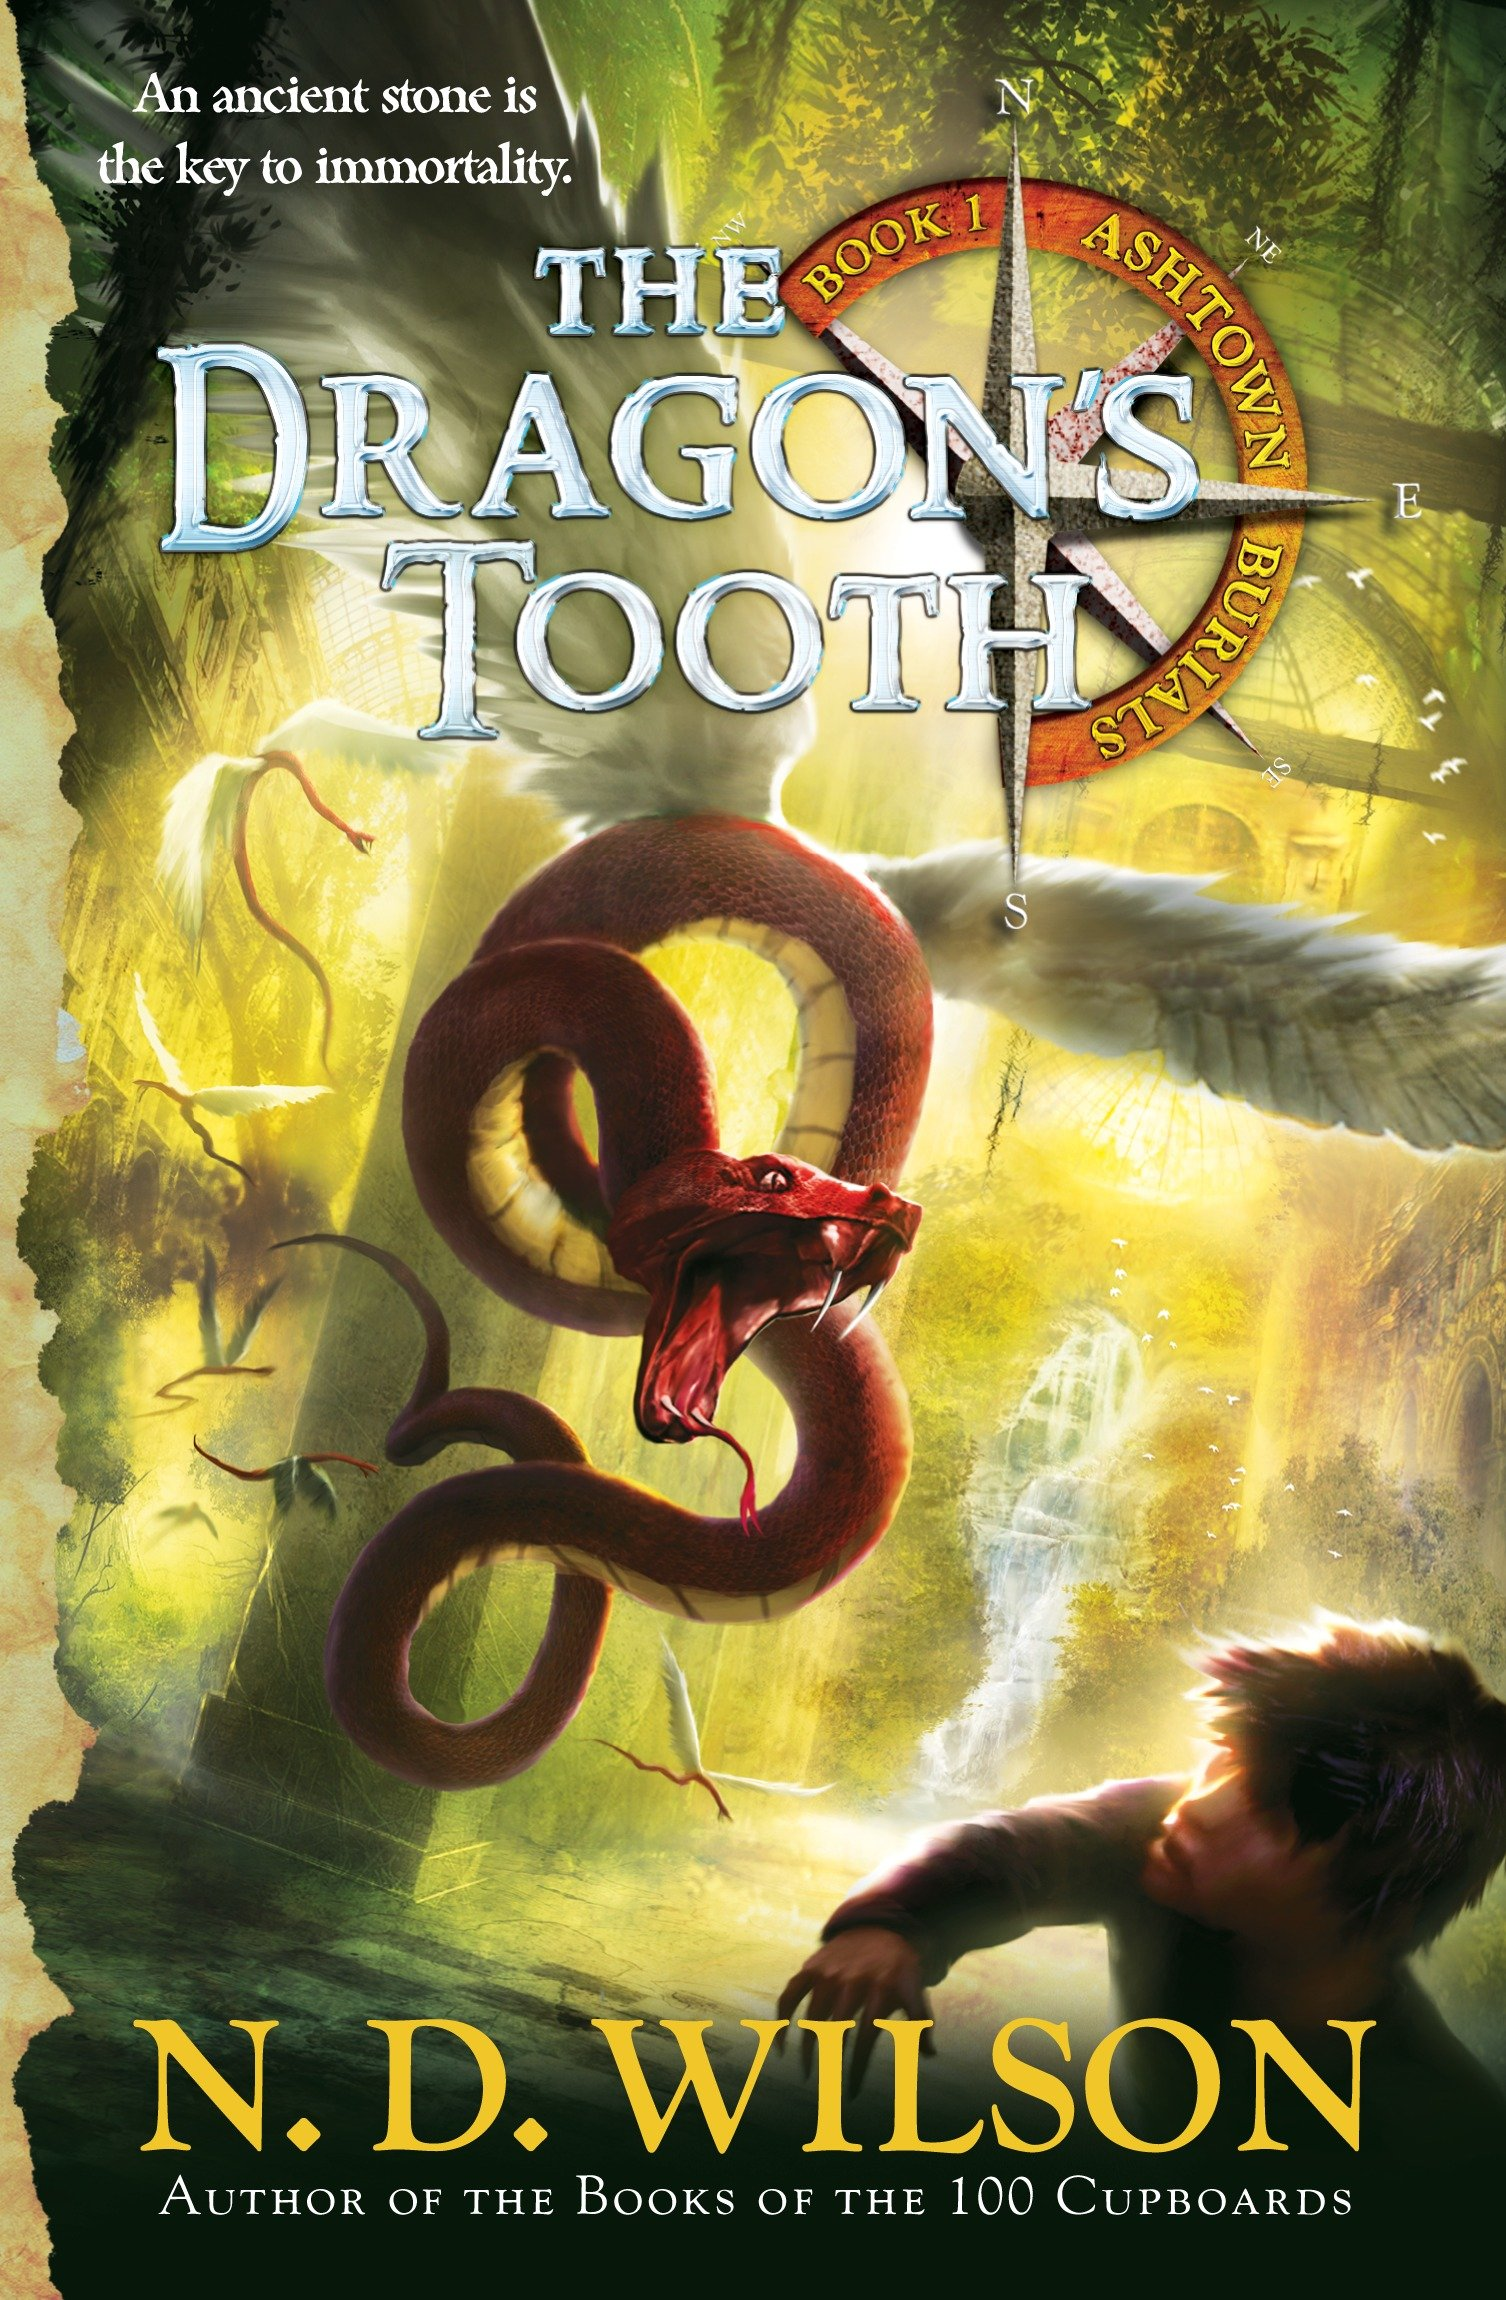 The dragon's tooth cover image